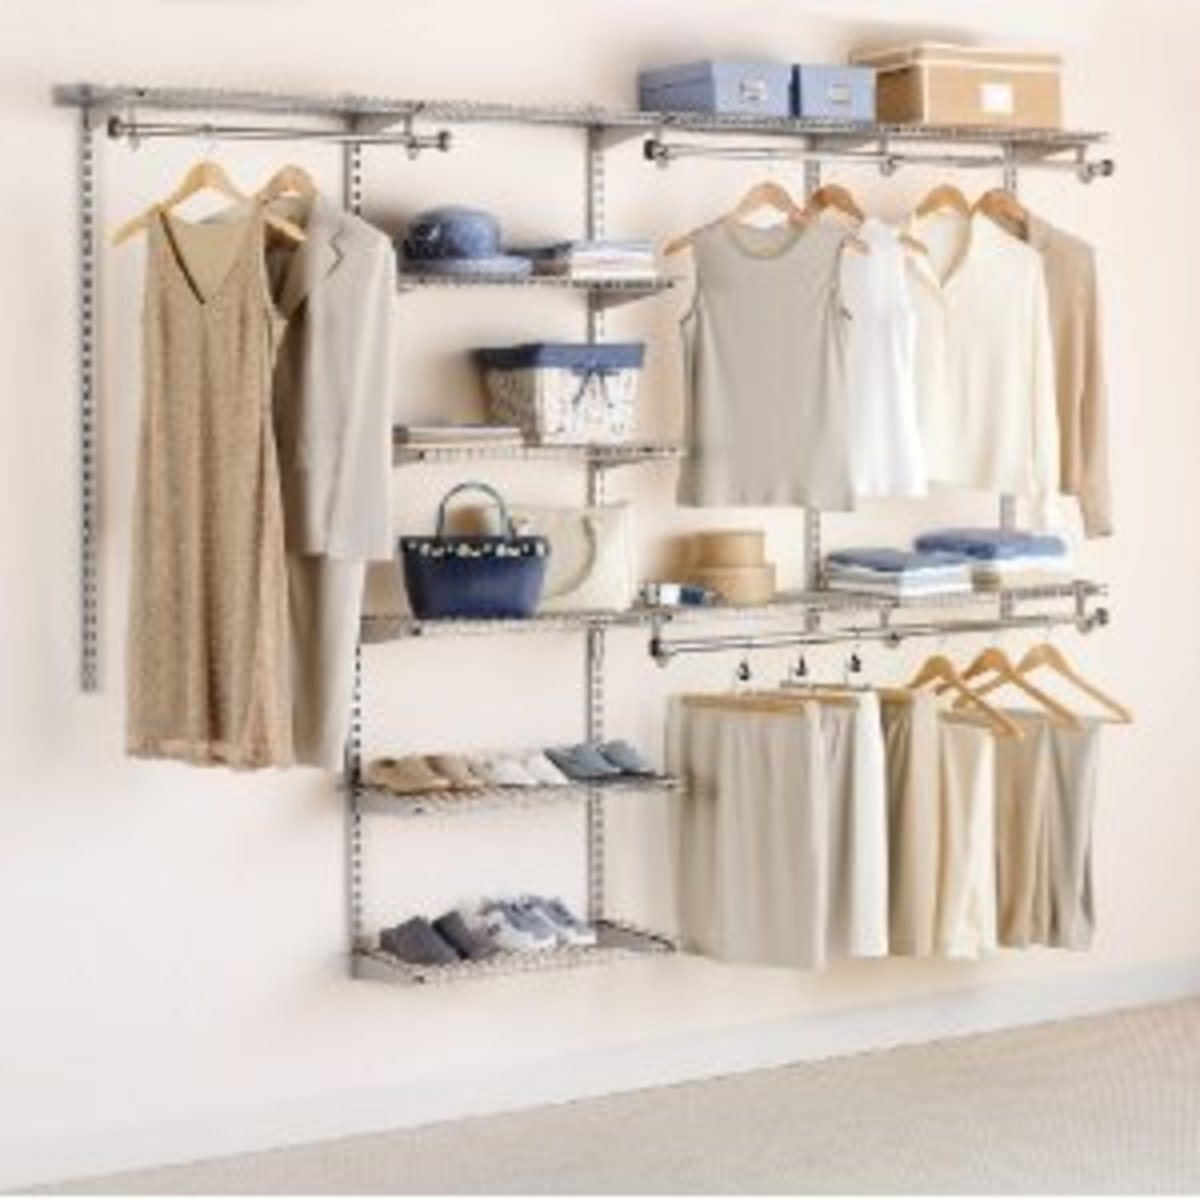 Rubbermaid Configurations 4-to-8-Foot Deluxe Custom Closet Kit